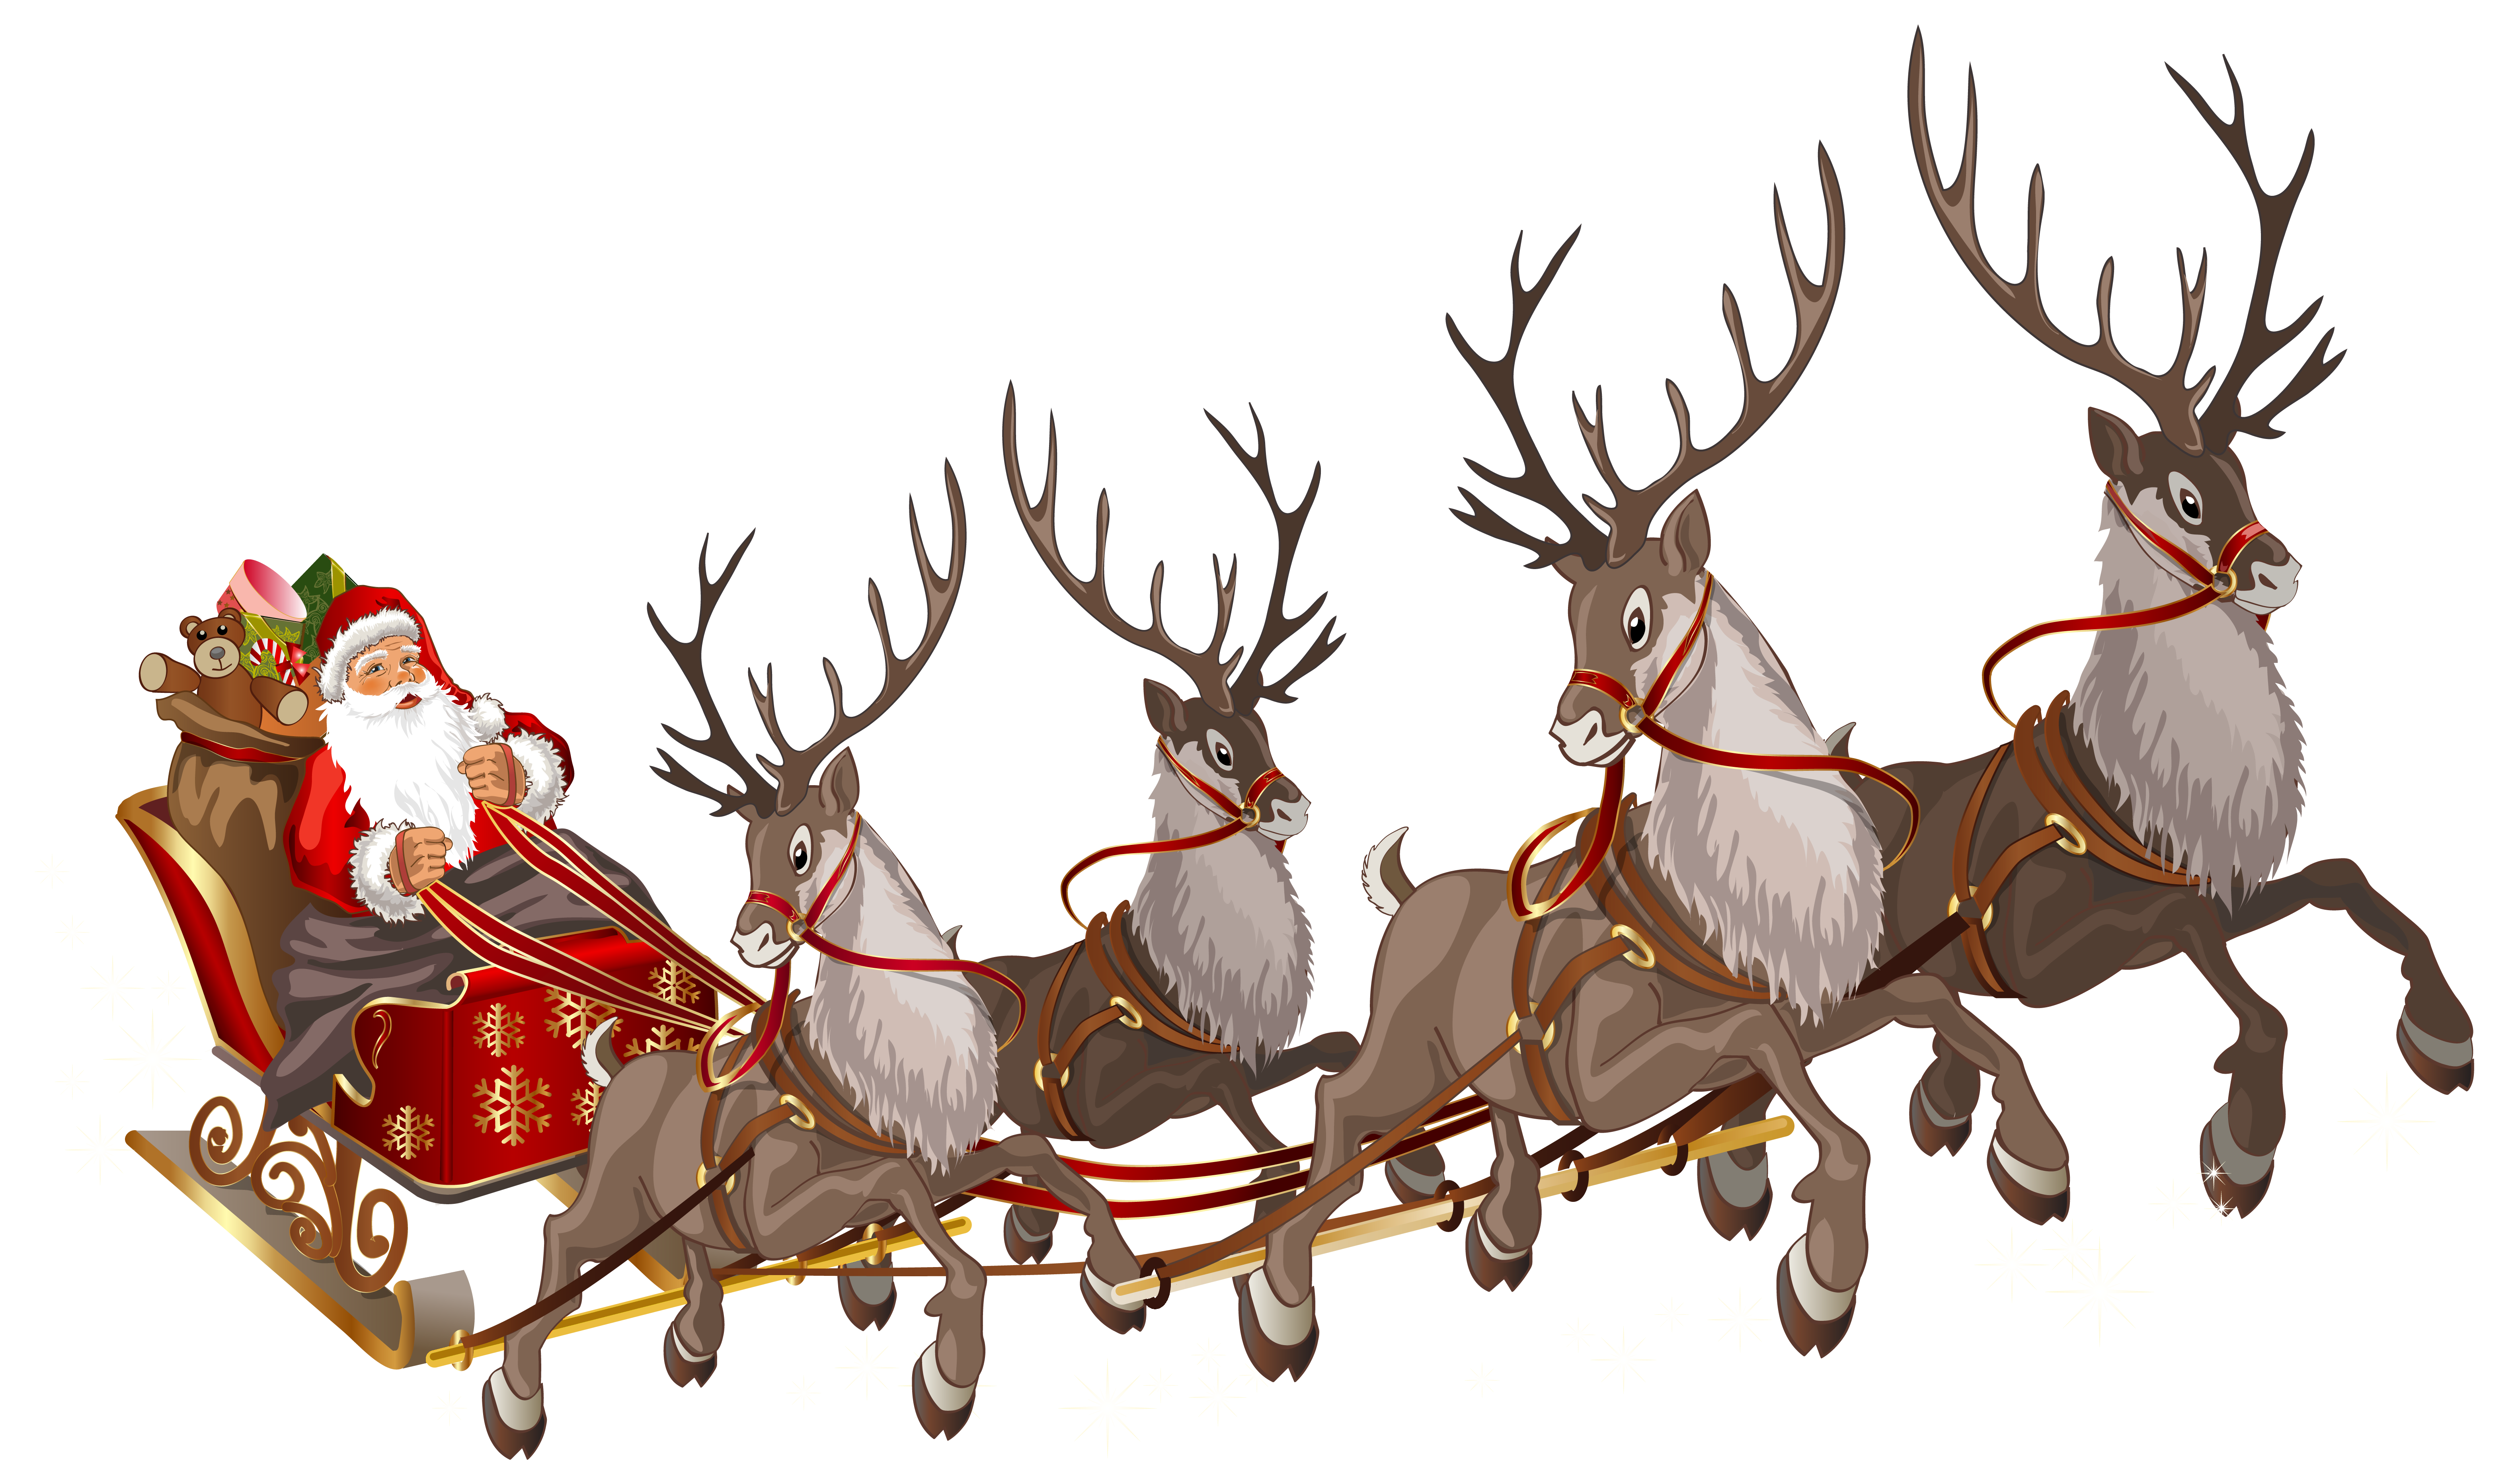 Santa Claus with Sleigh PNG Clipart Image.